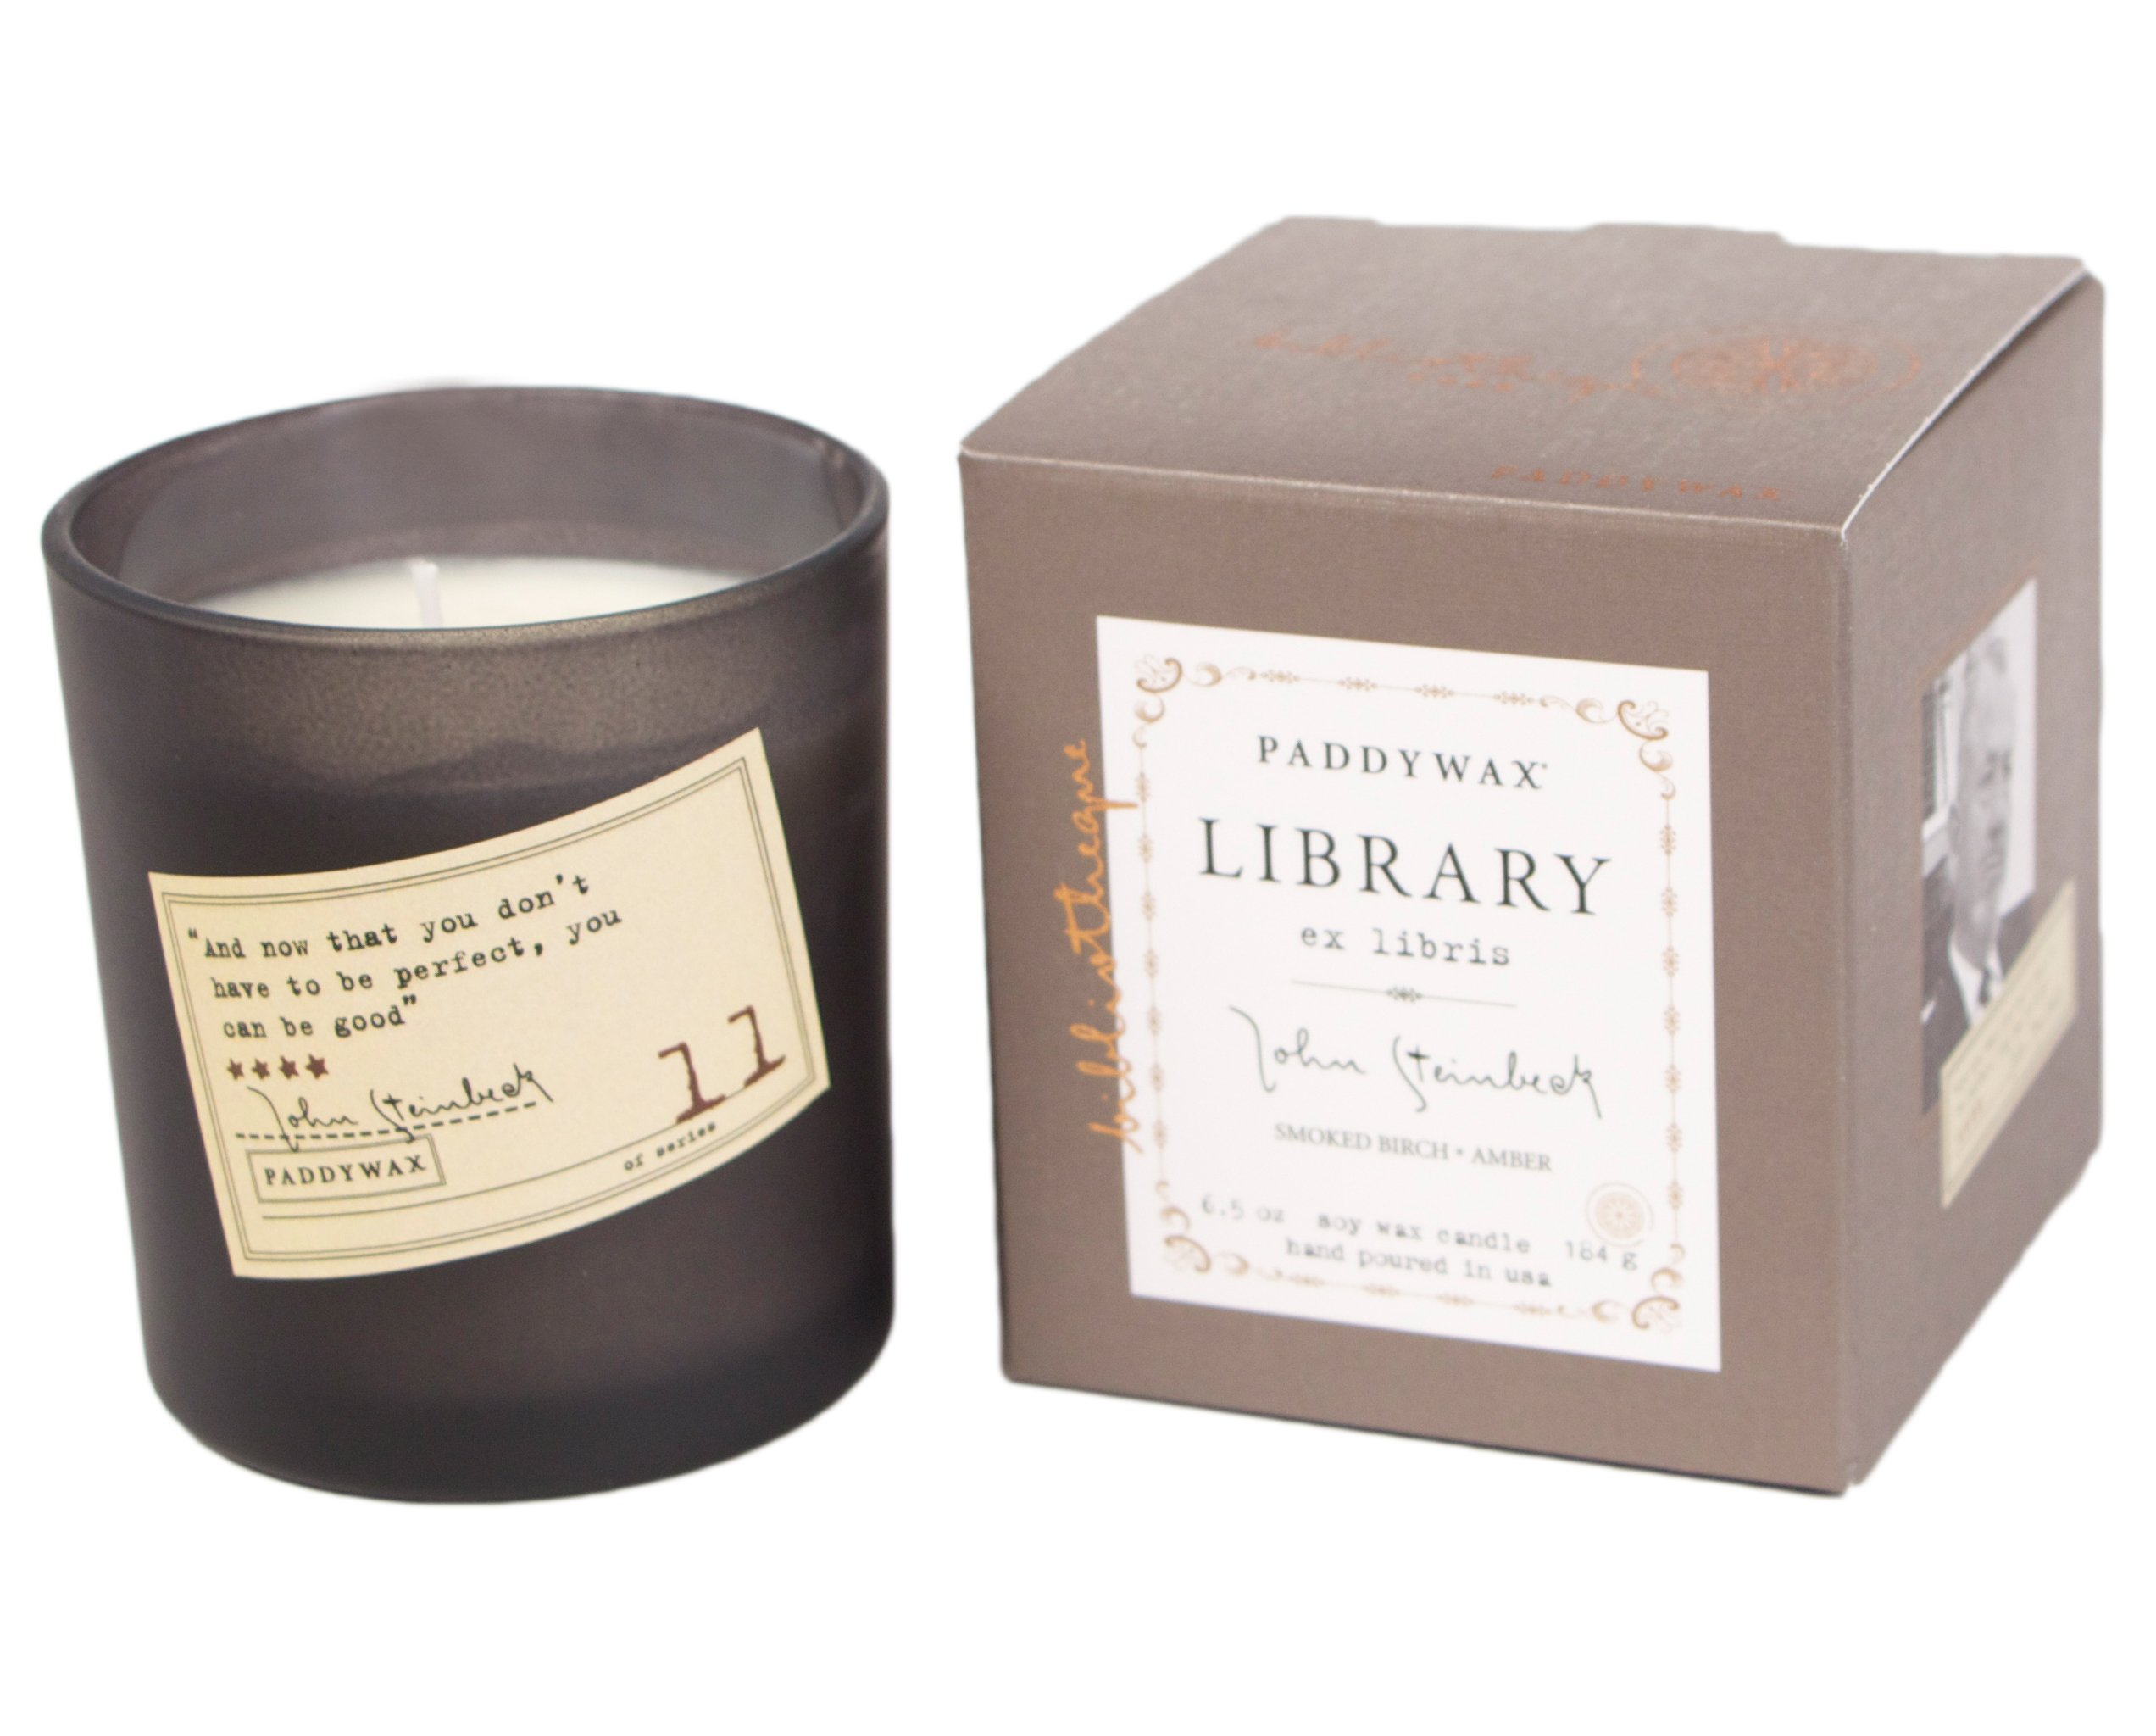 Paddywax Library Collection John Steinbeck Scented Soy Wax Candle, 6.5-Ounce, Smoked Birch & Amber